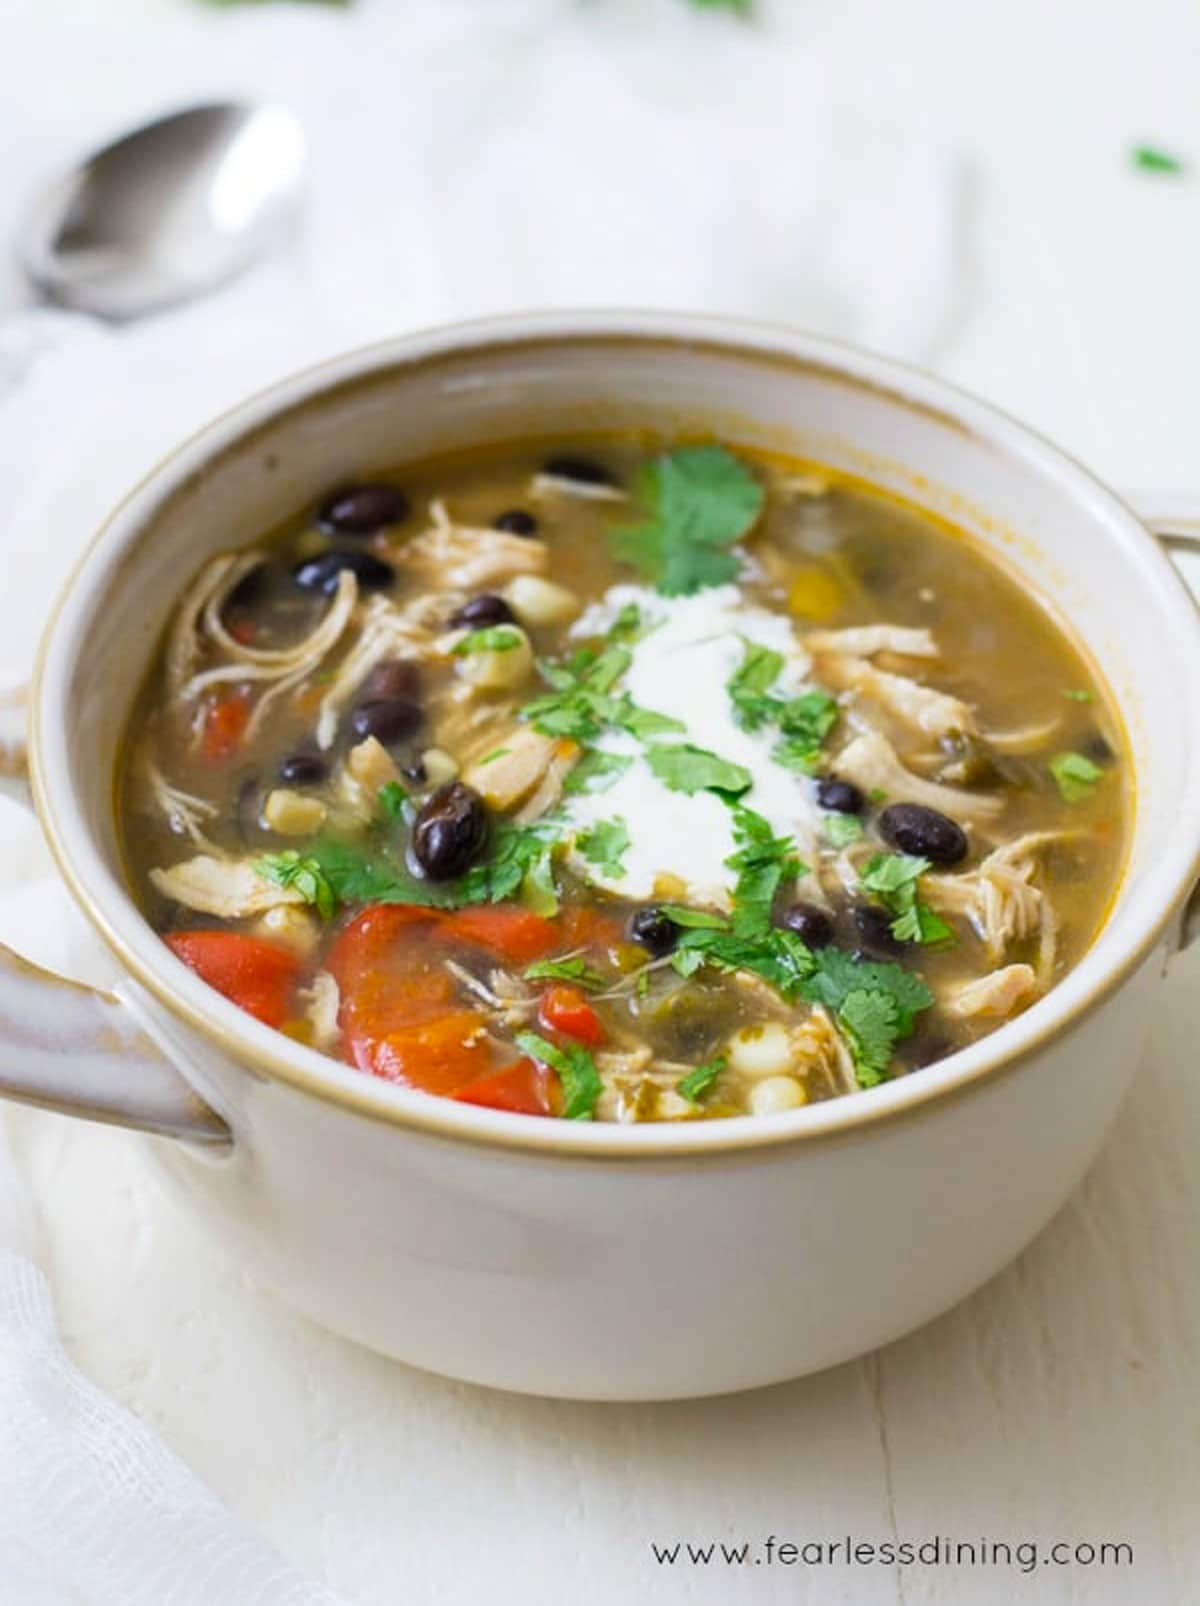 a side view of the bowl of gluten free taco soup